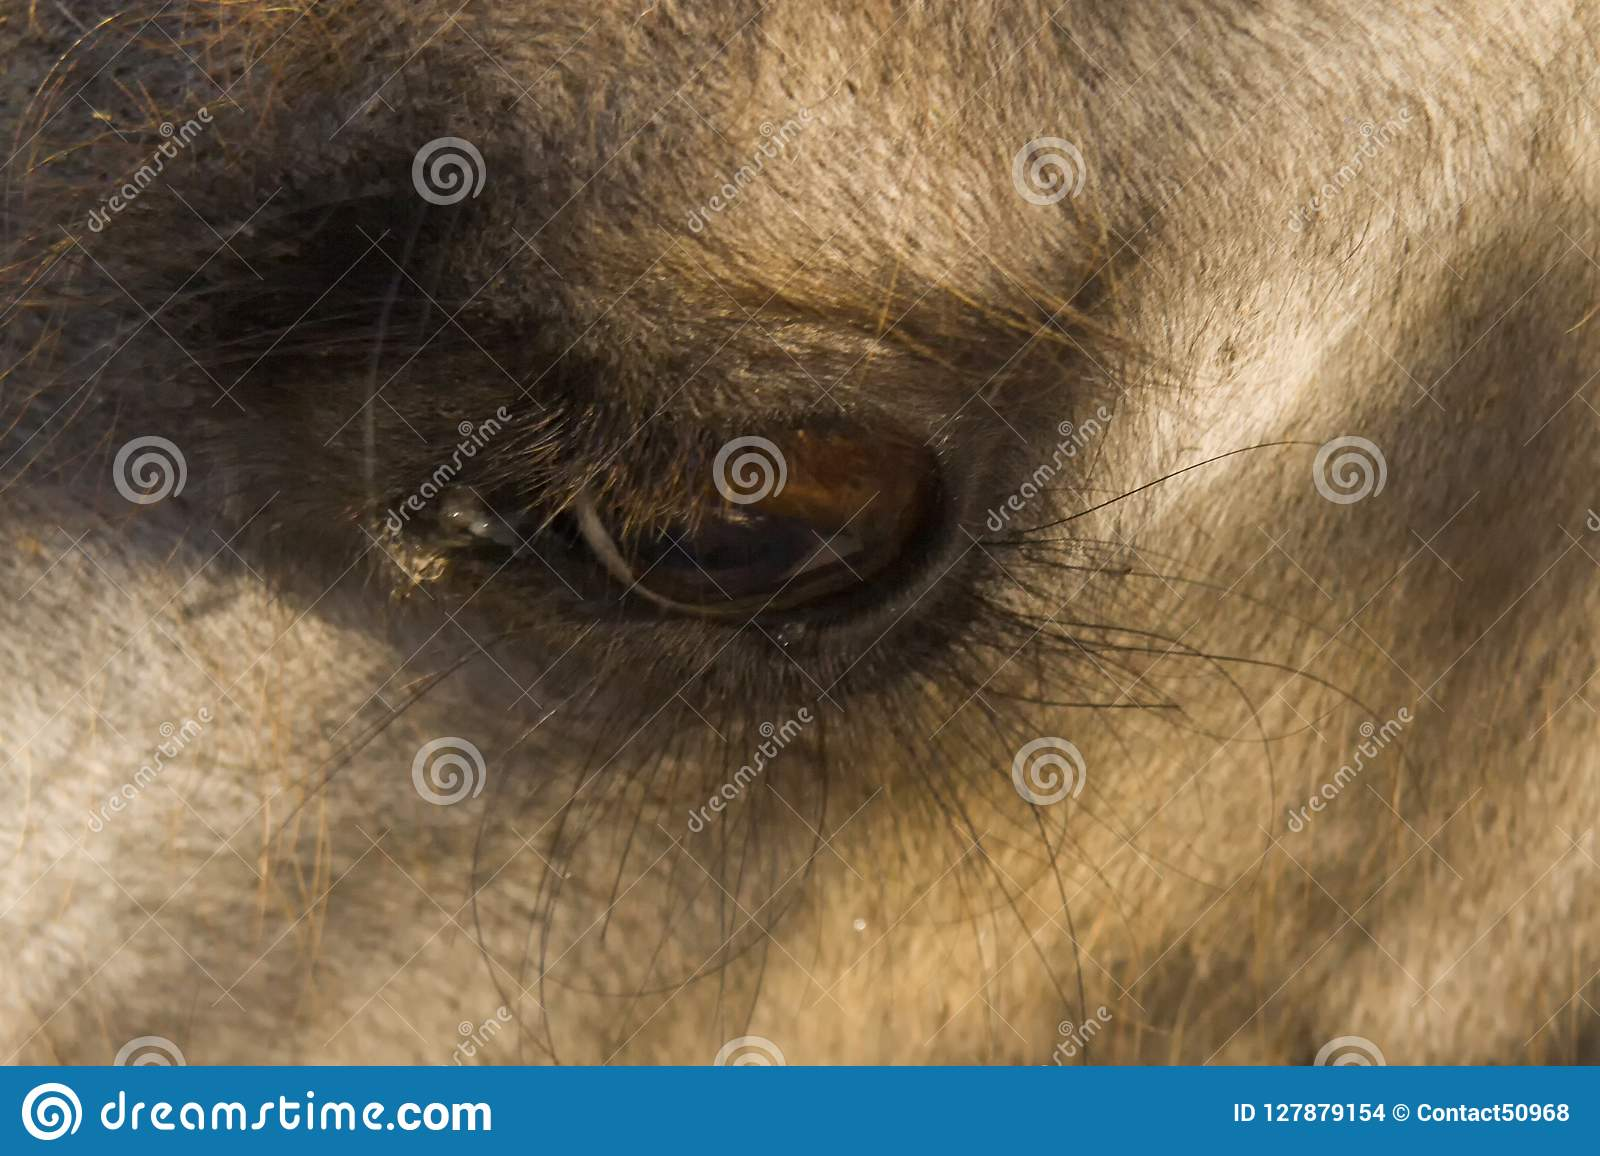 Eyes of camel. Close-up, macro photo. Used informally, camel or, more correctly, camelid refers to any of the seven members of th